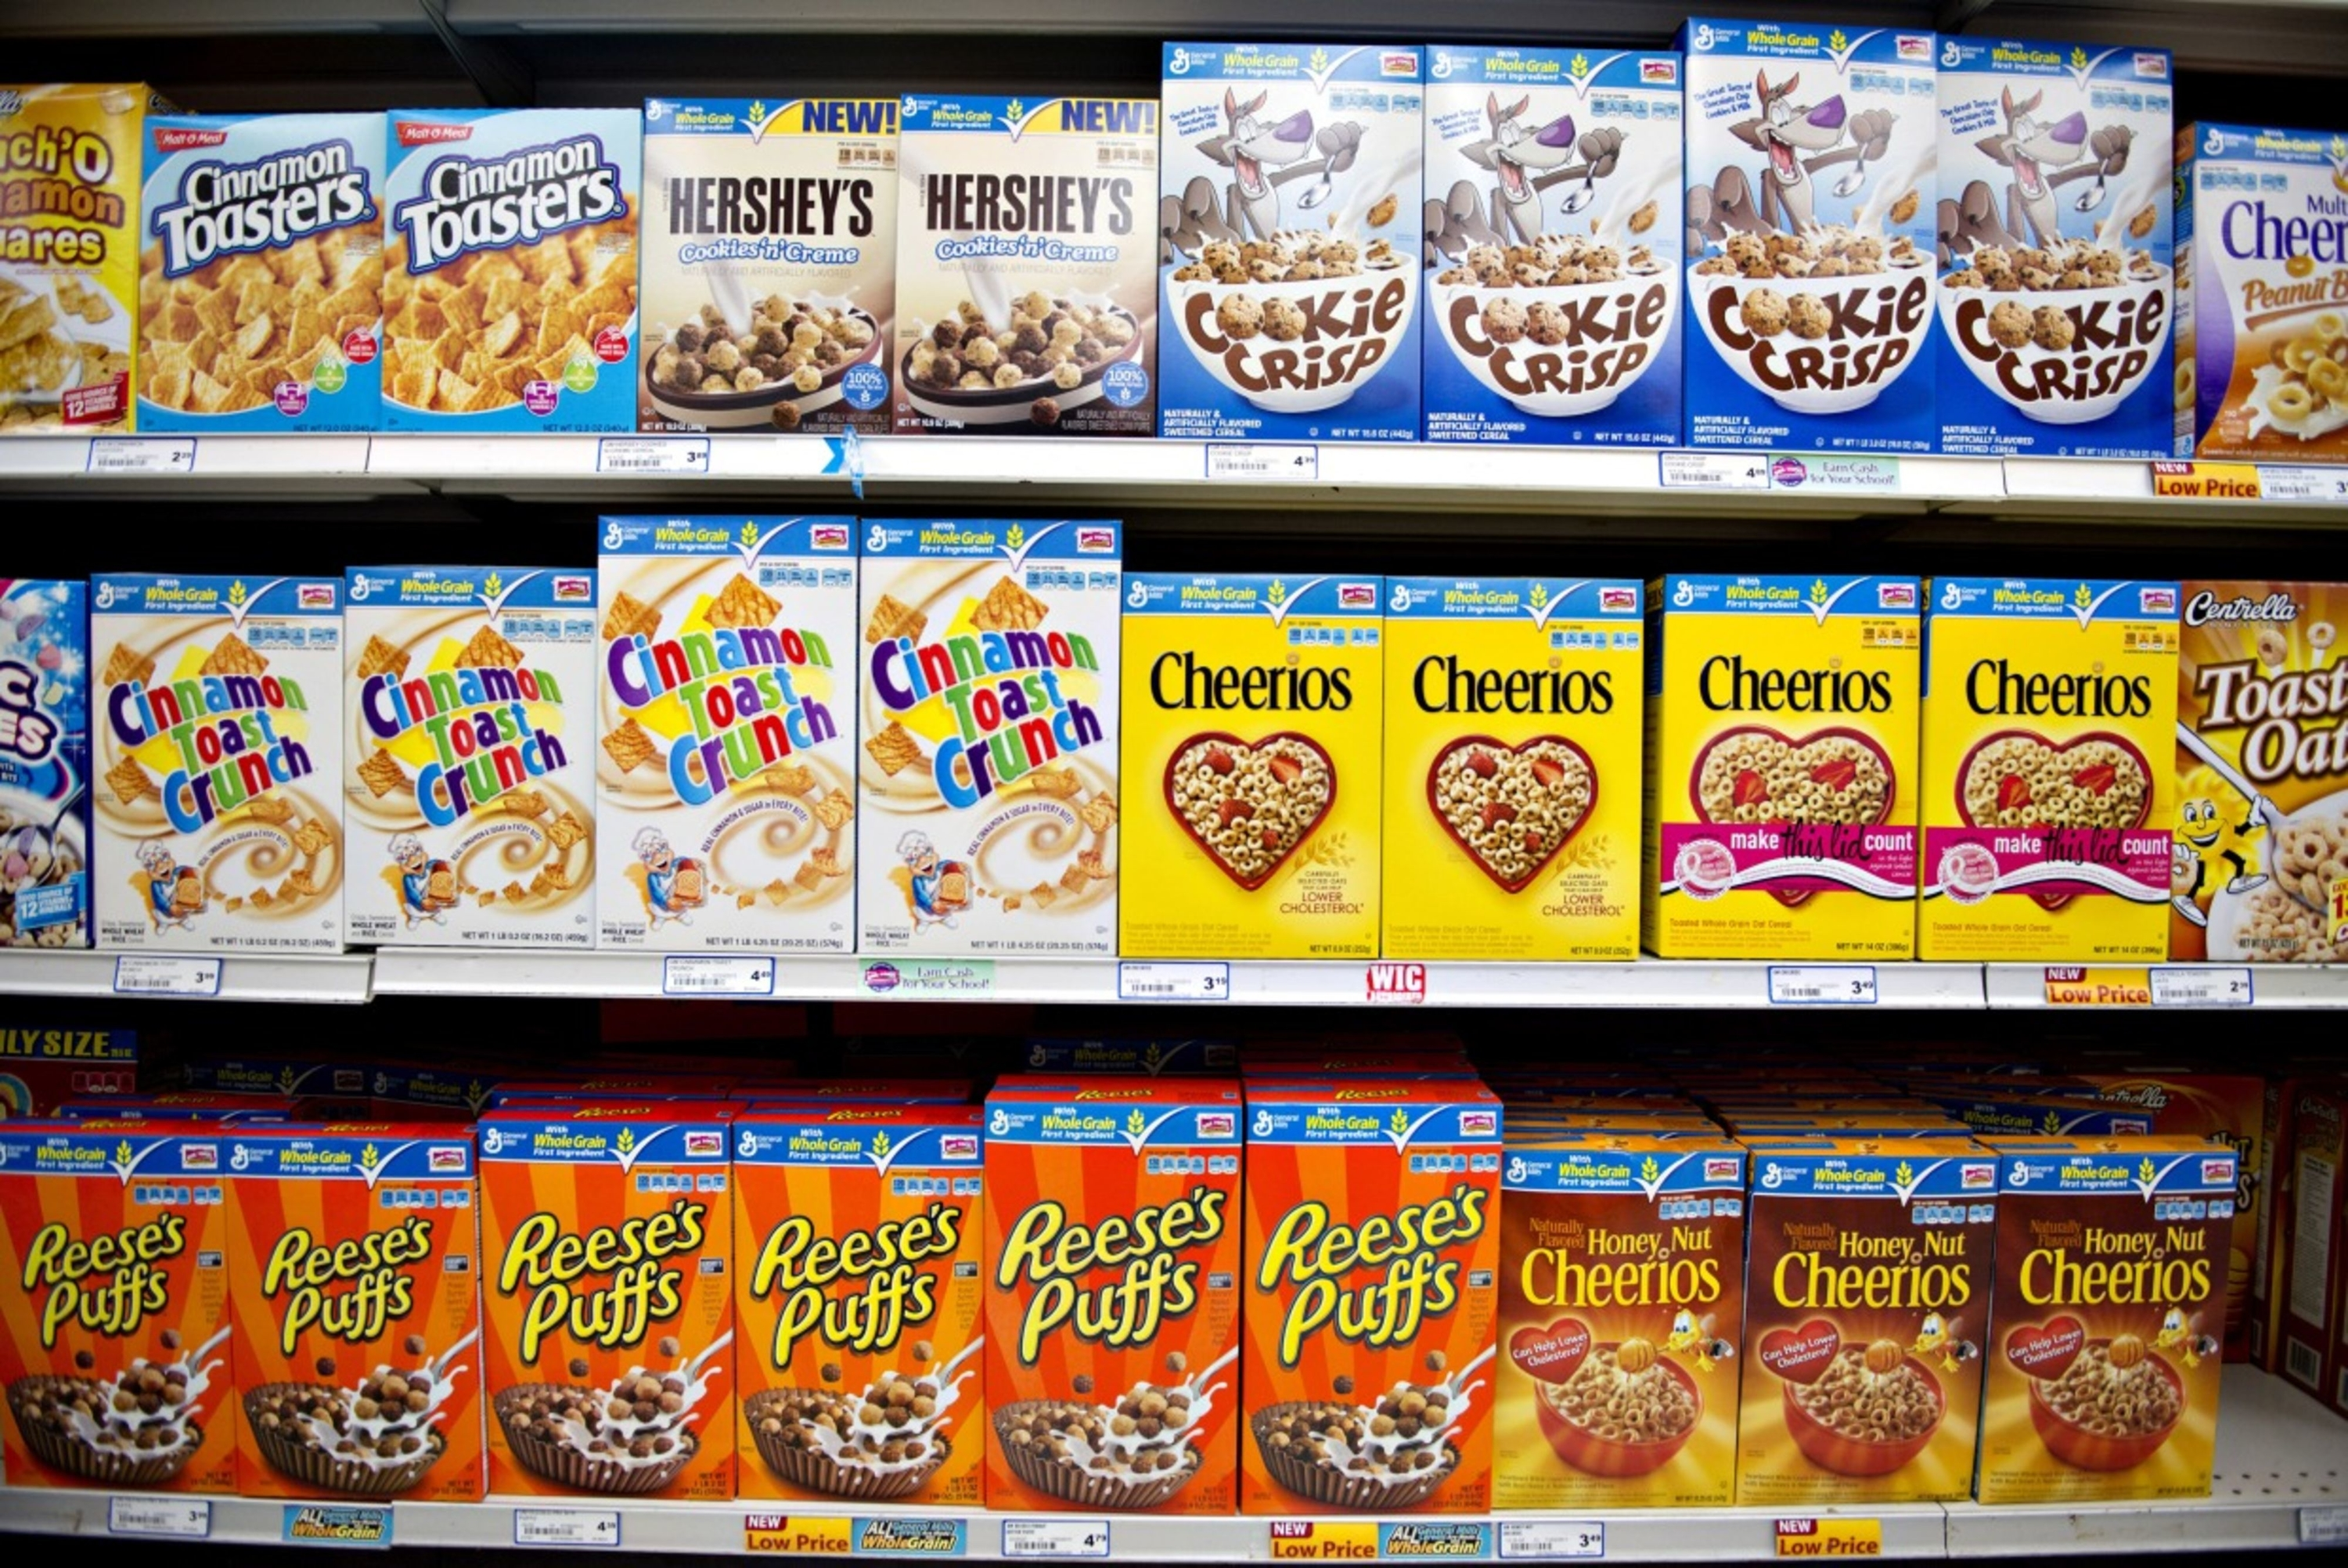 General Mills boosts marketing spending, pushes for appropriate messages during COVID-19